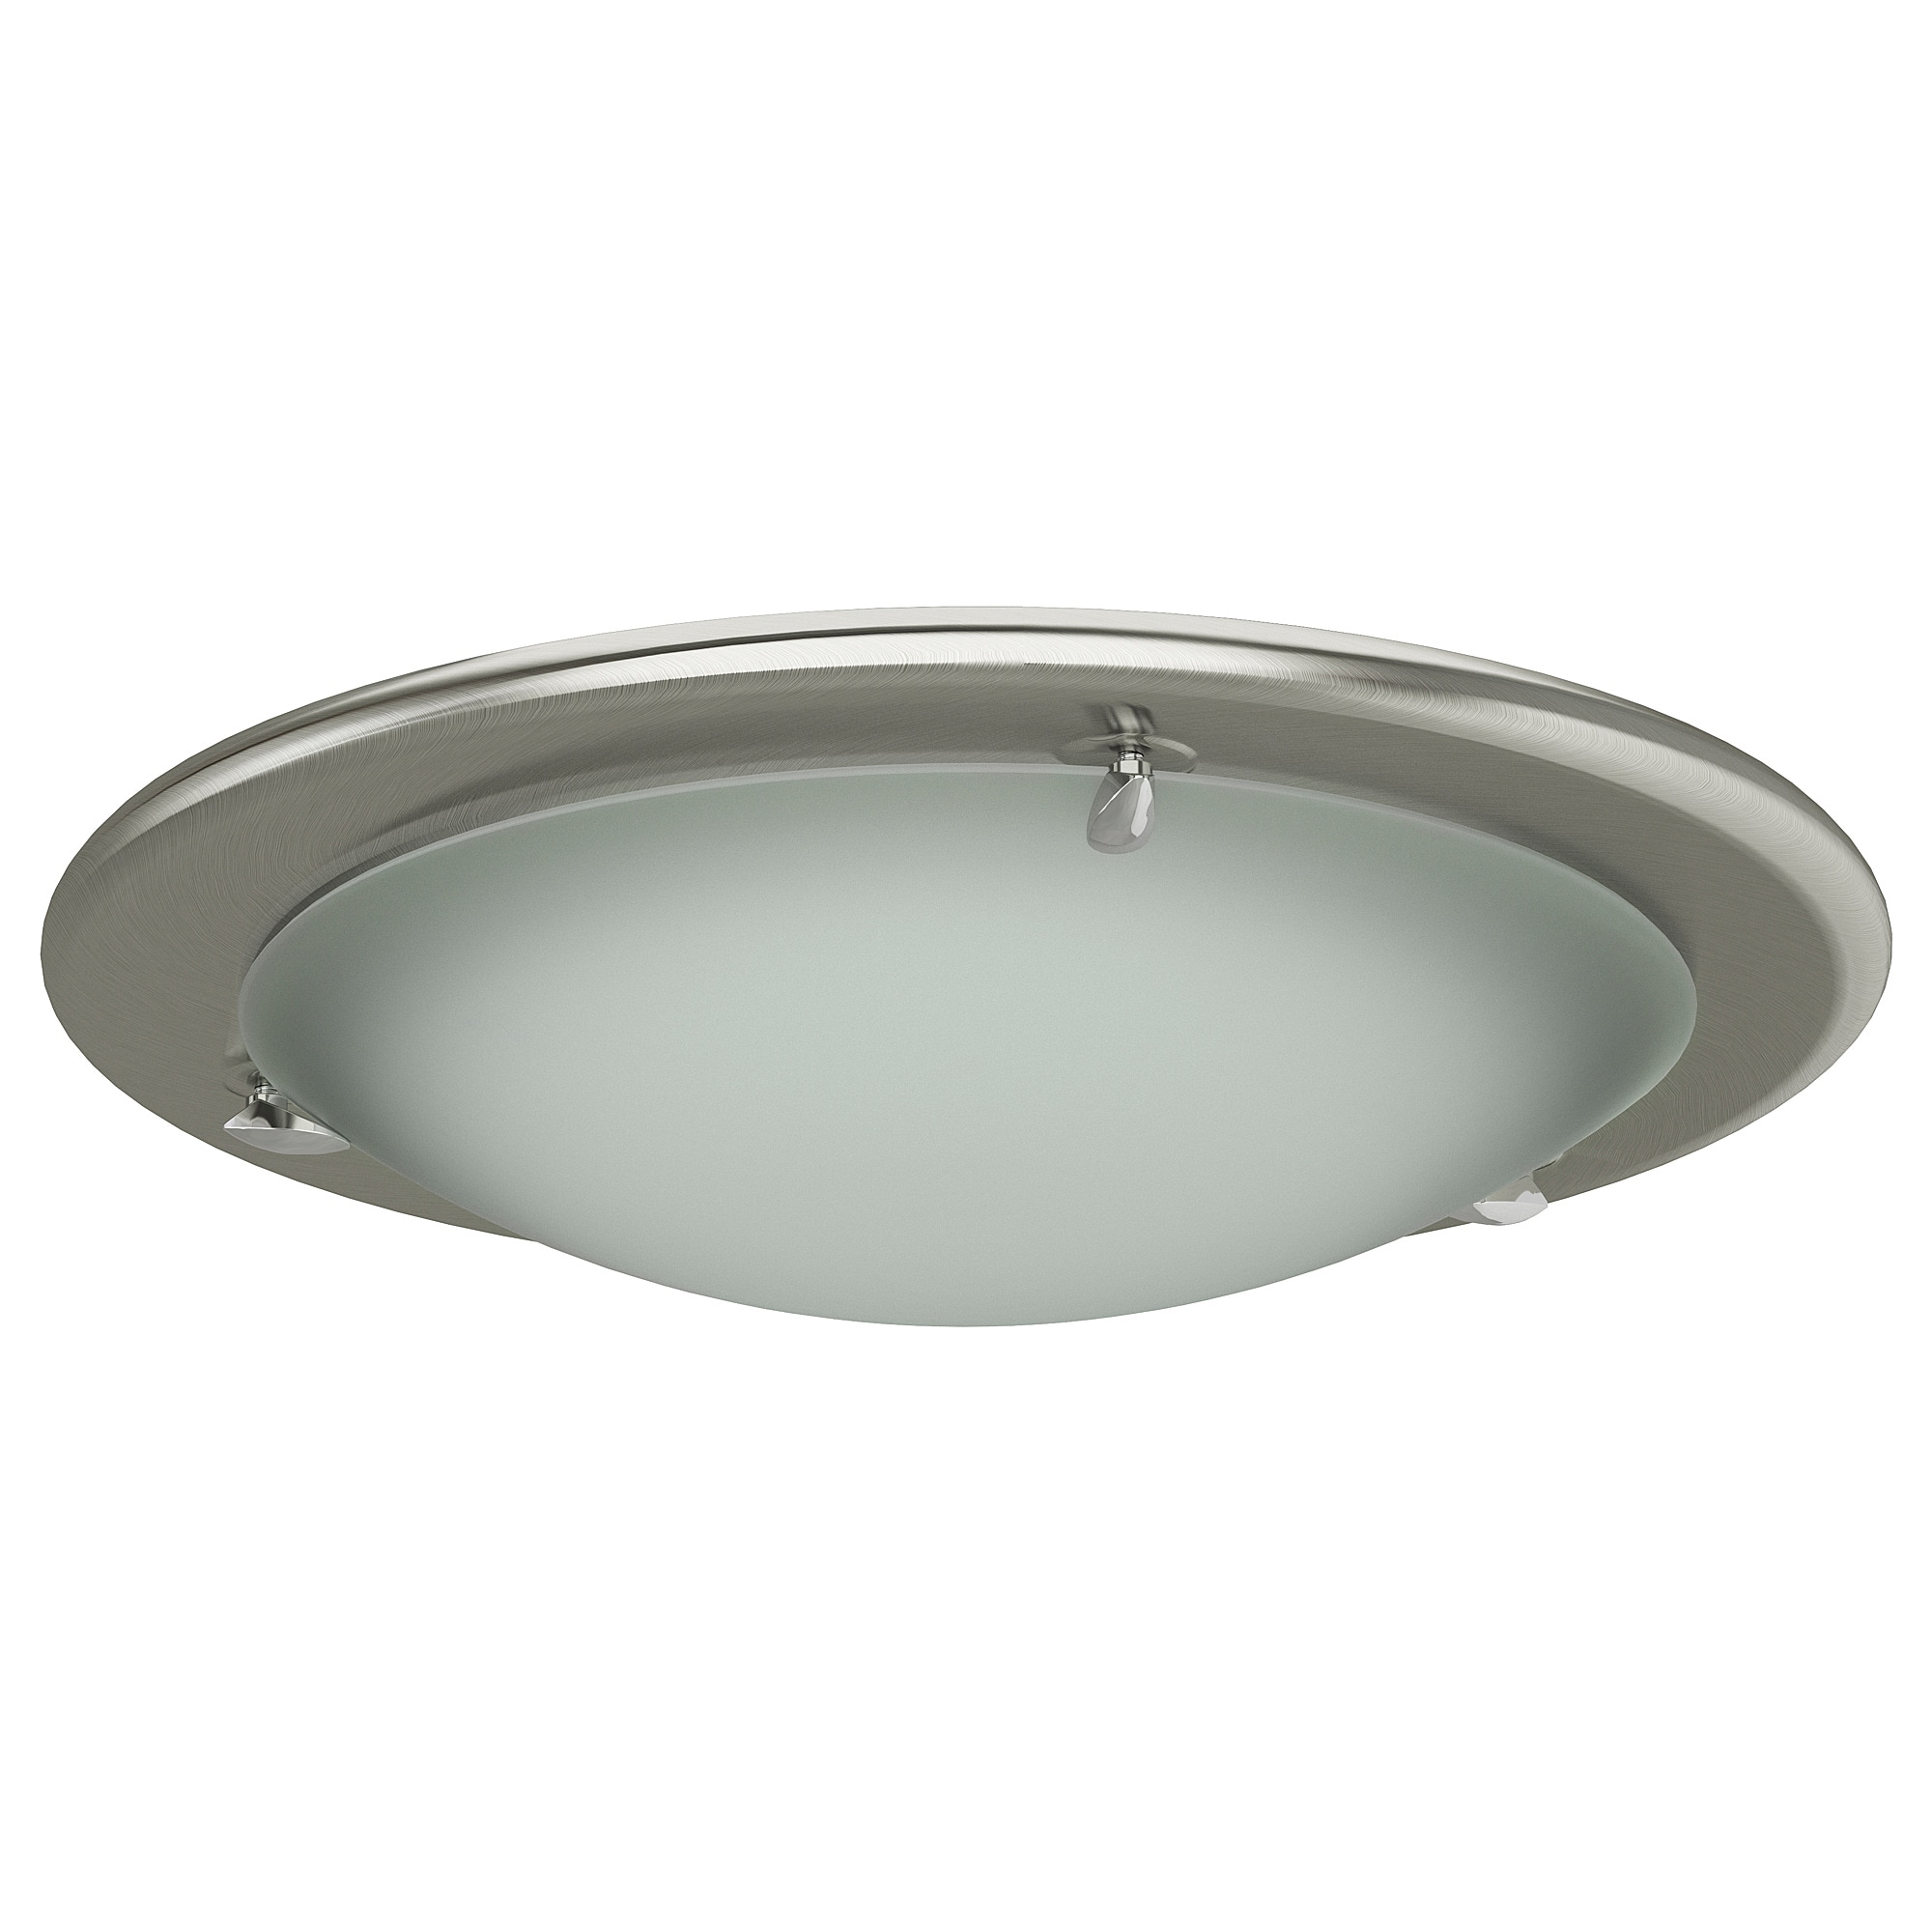 Ceiling lights lamps ikea pult ceiling lamp mozeypictures Gallery